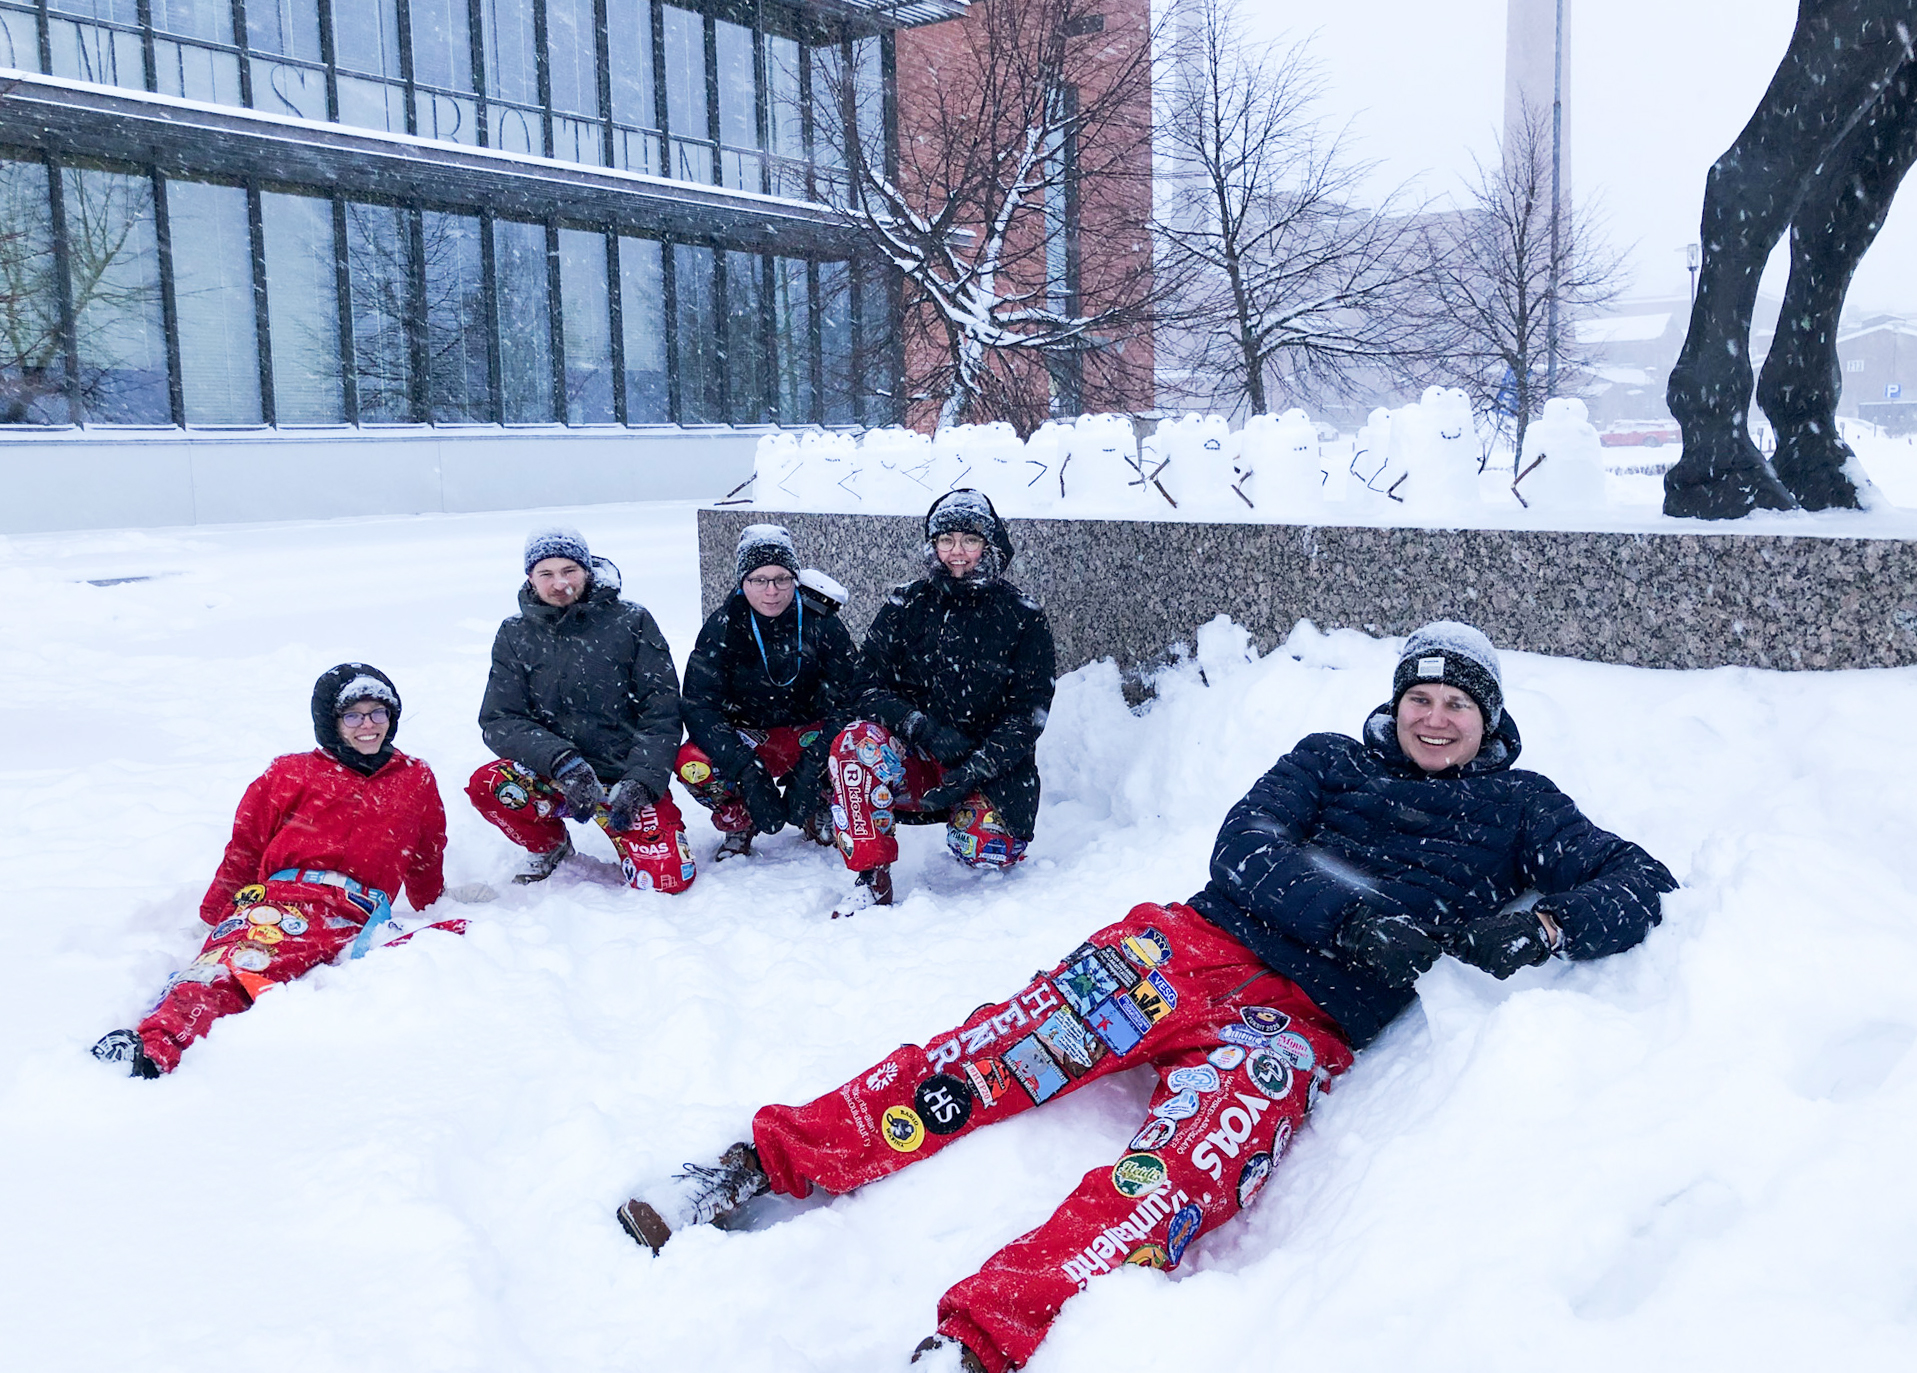 Board of the Student Union in front of snowy Domus Bothnica